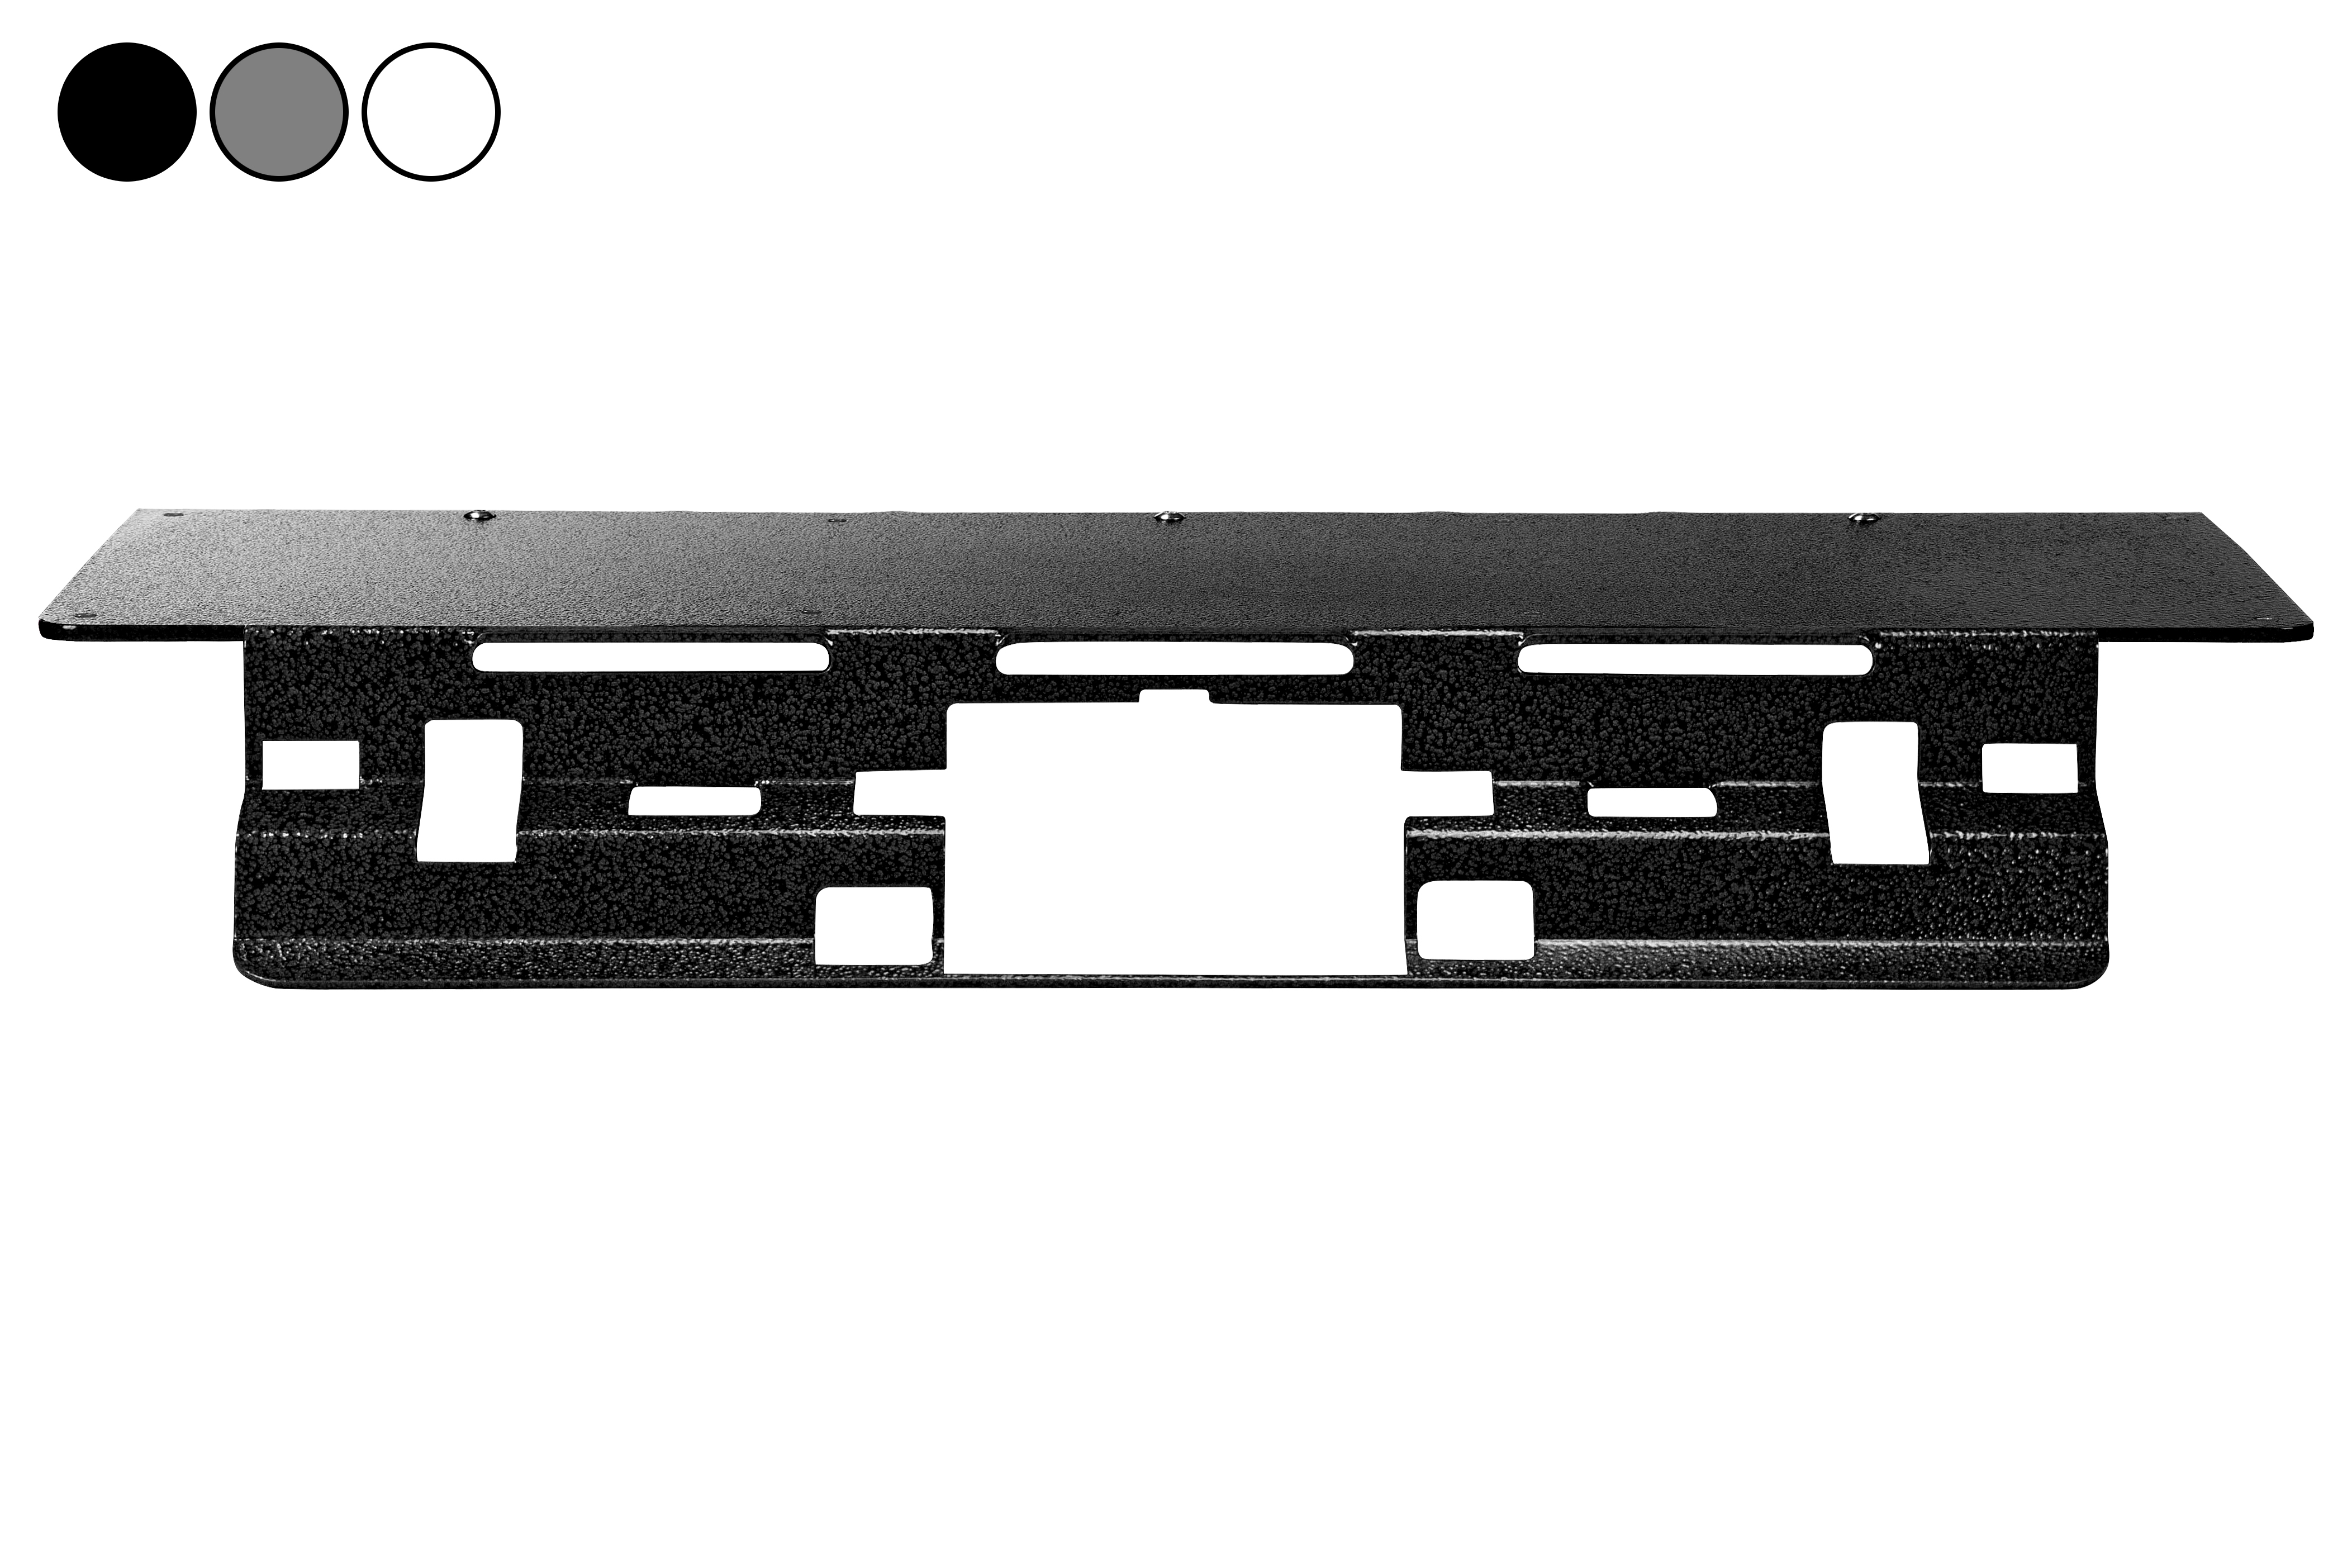 No Drill Mounting Plate, Fits 2019 GMC Sierra 1500 w/ Spoiler, Permanent